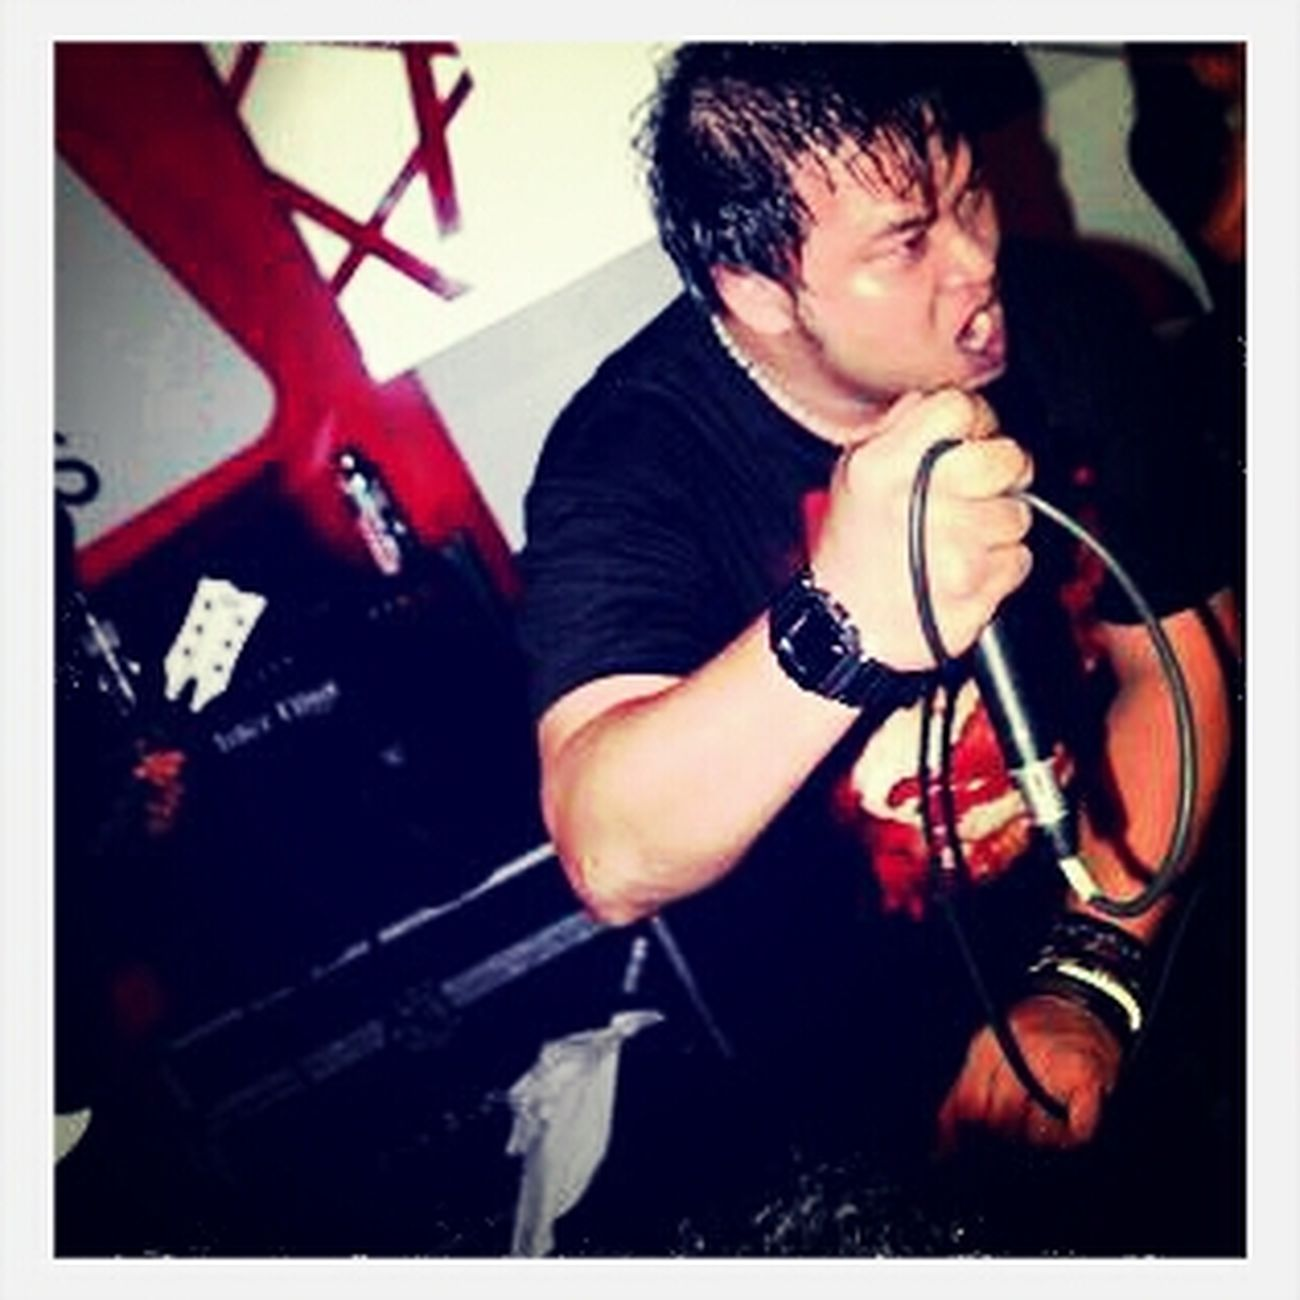 Performance Vocalist Thrashmetalcore TheRiseofBabel